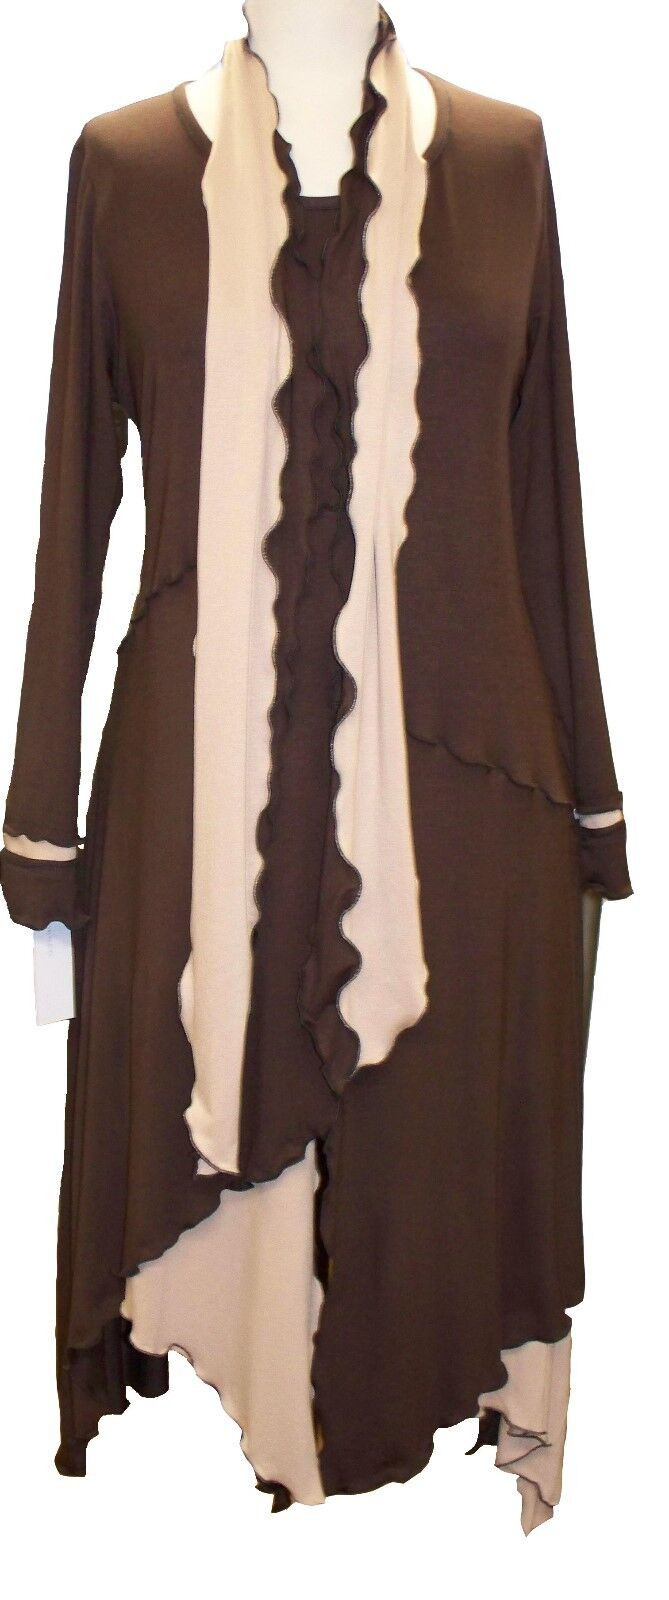 C57 Caroline Ann Quirky Lagenlook braun and Cream long Tunic Top Dress